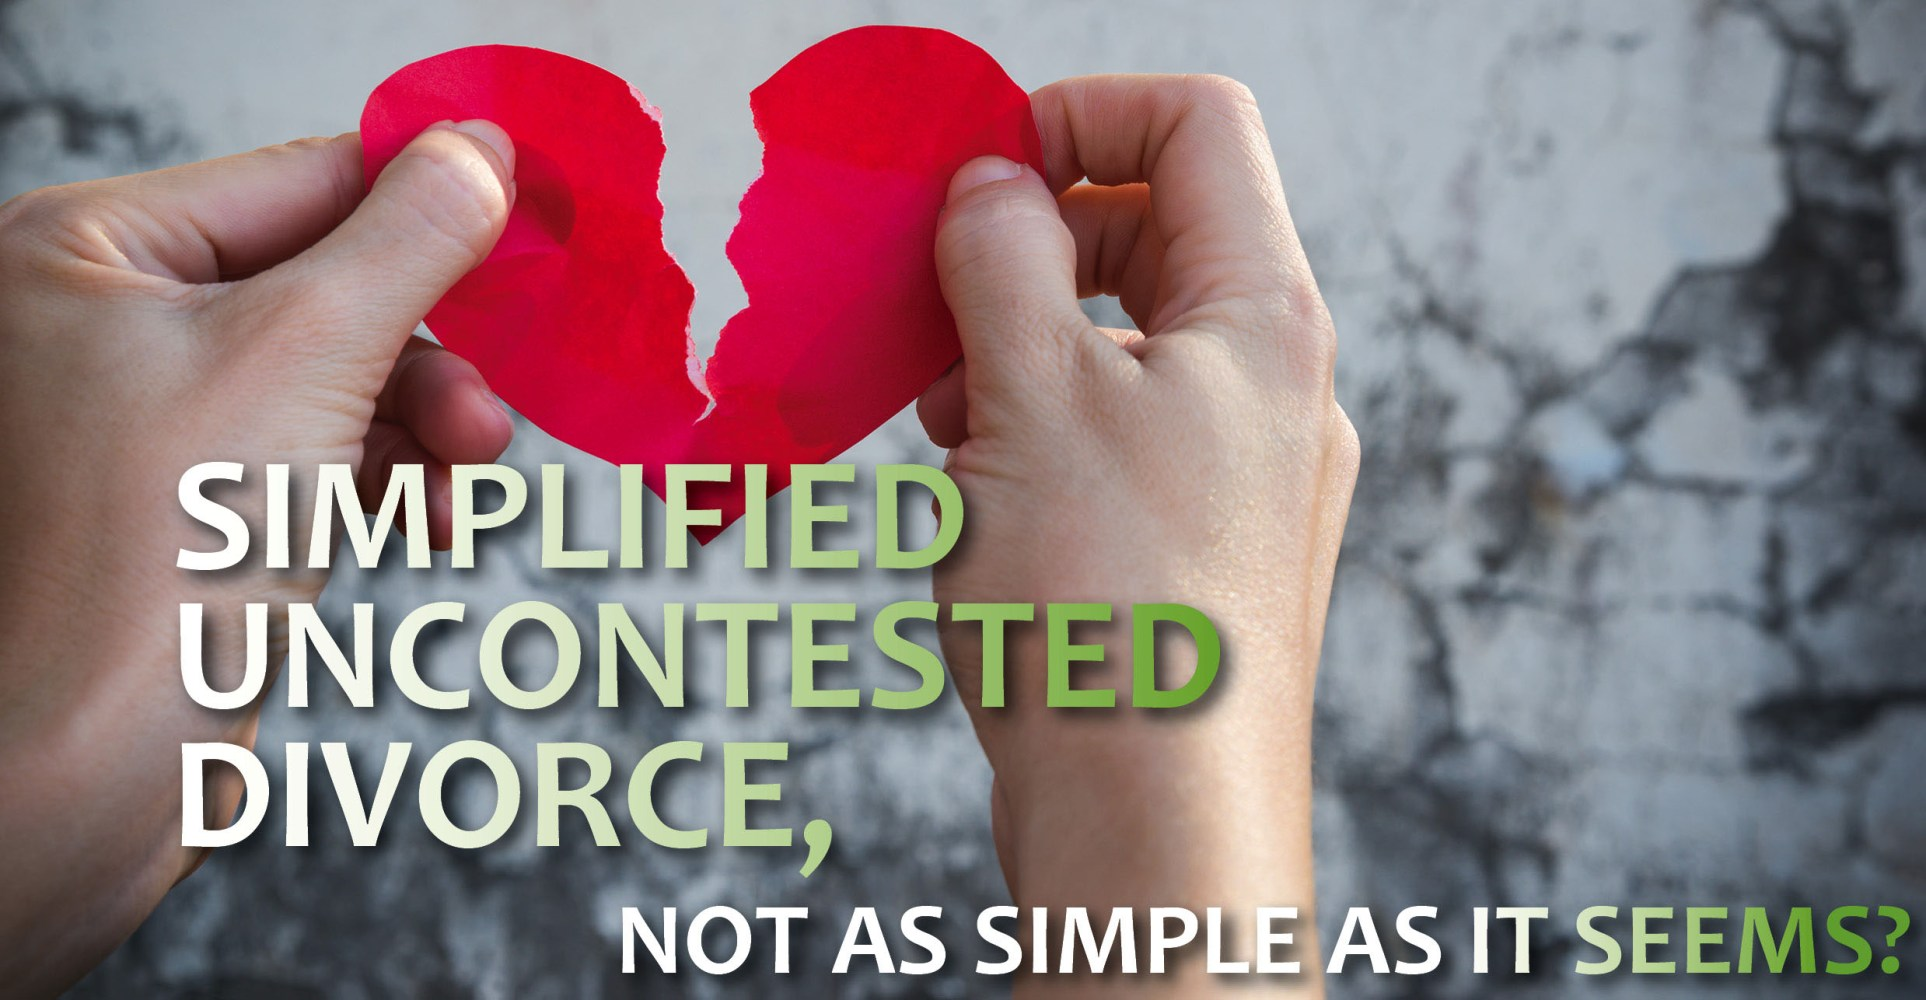 Simplified Uncontested Divorce, Not As Simple As It Seems?